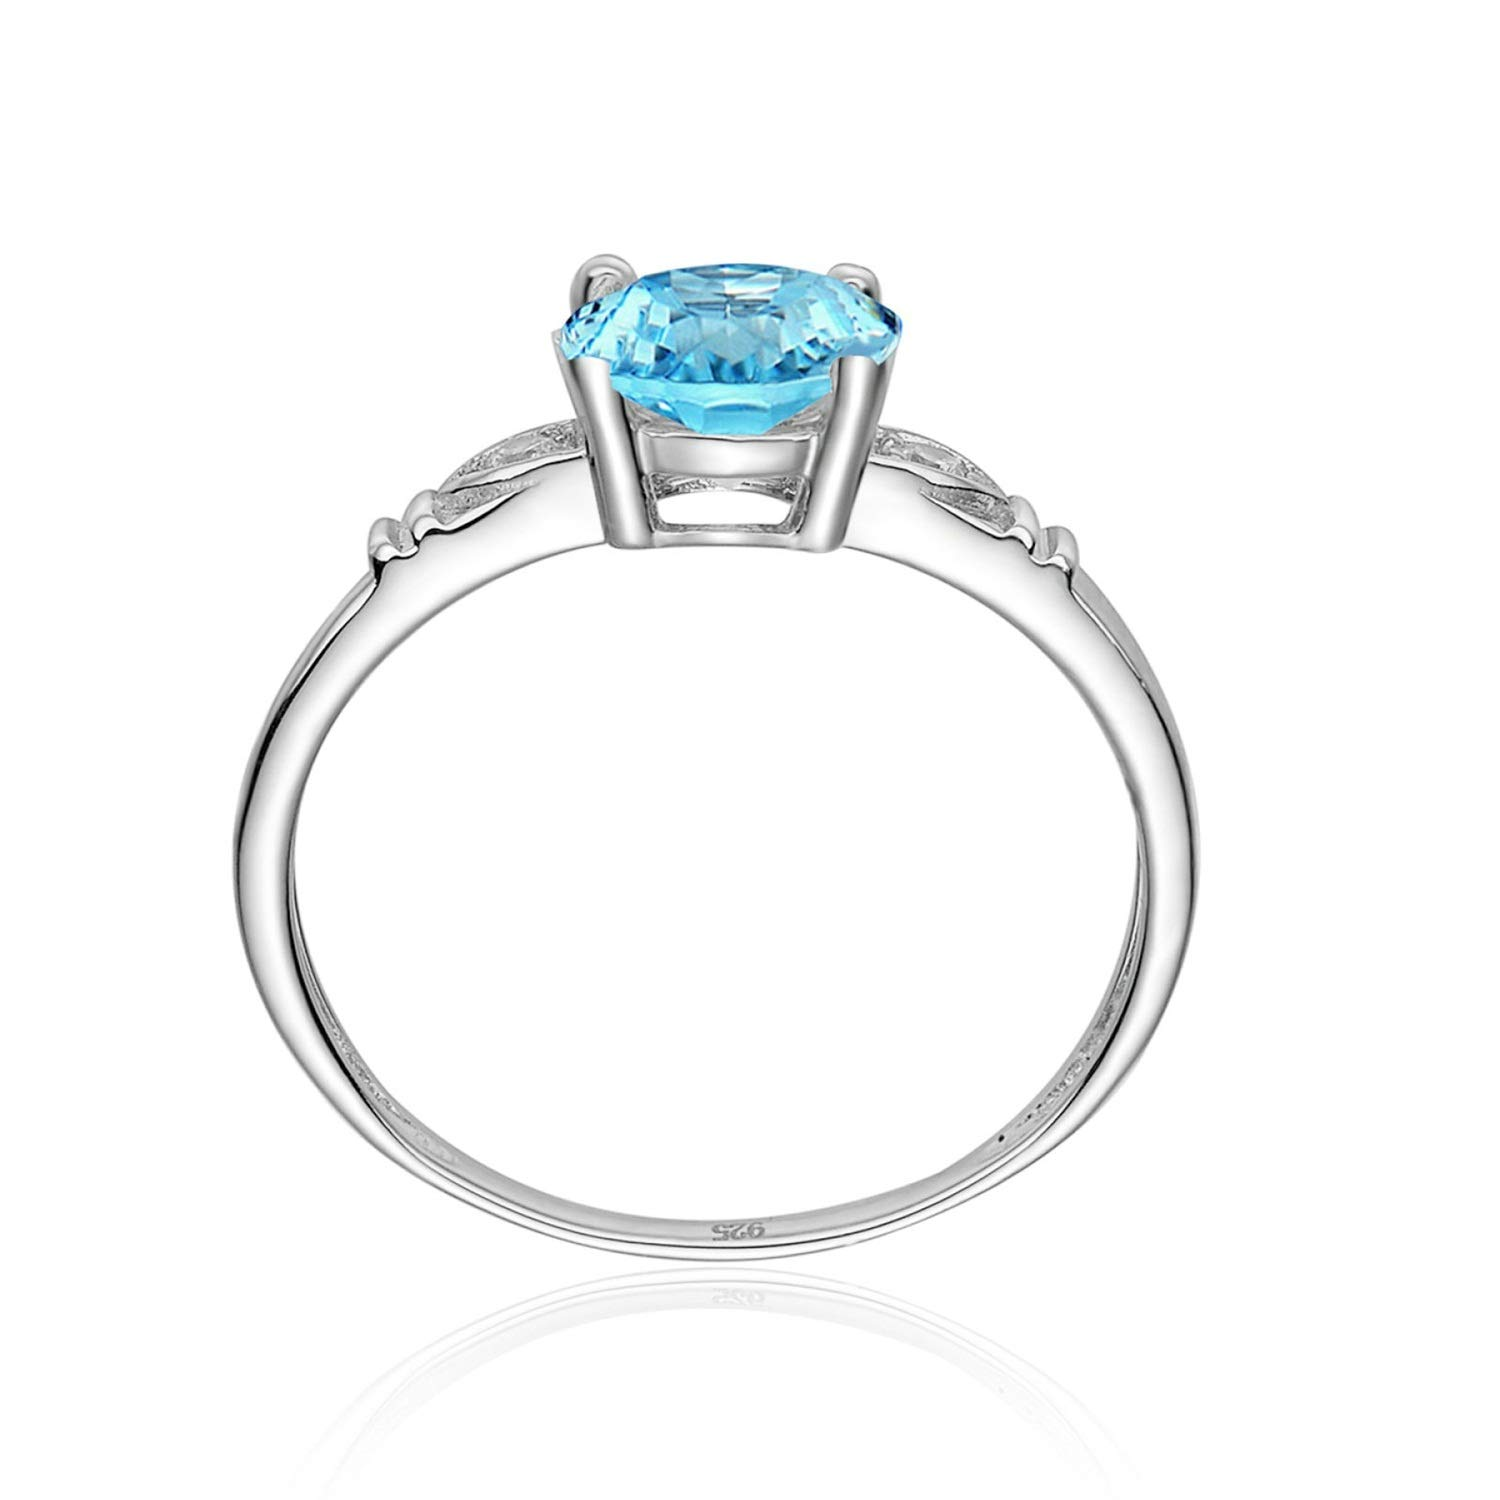 AMDXD Jewellery 925 Silver Engagement Ring for Women Blue Round Cut Topaz Round Rings